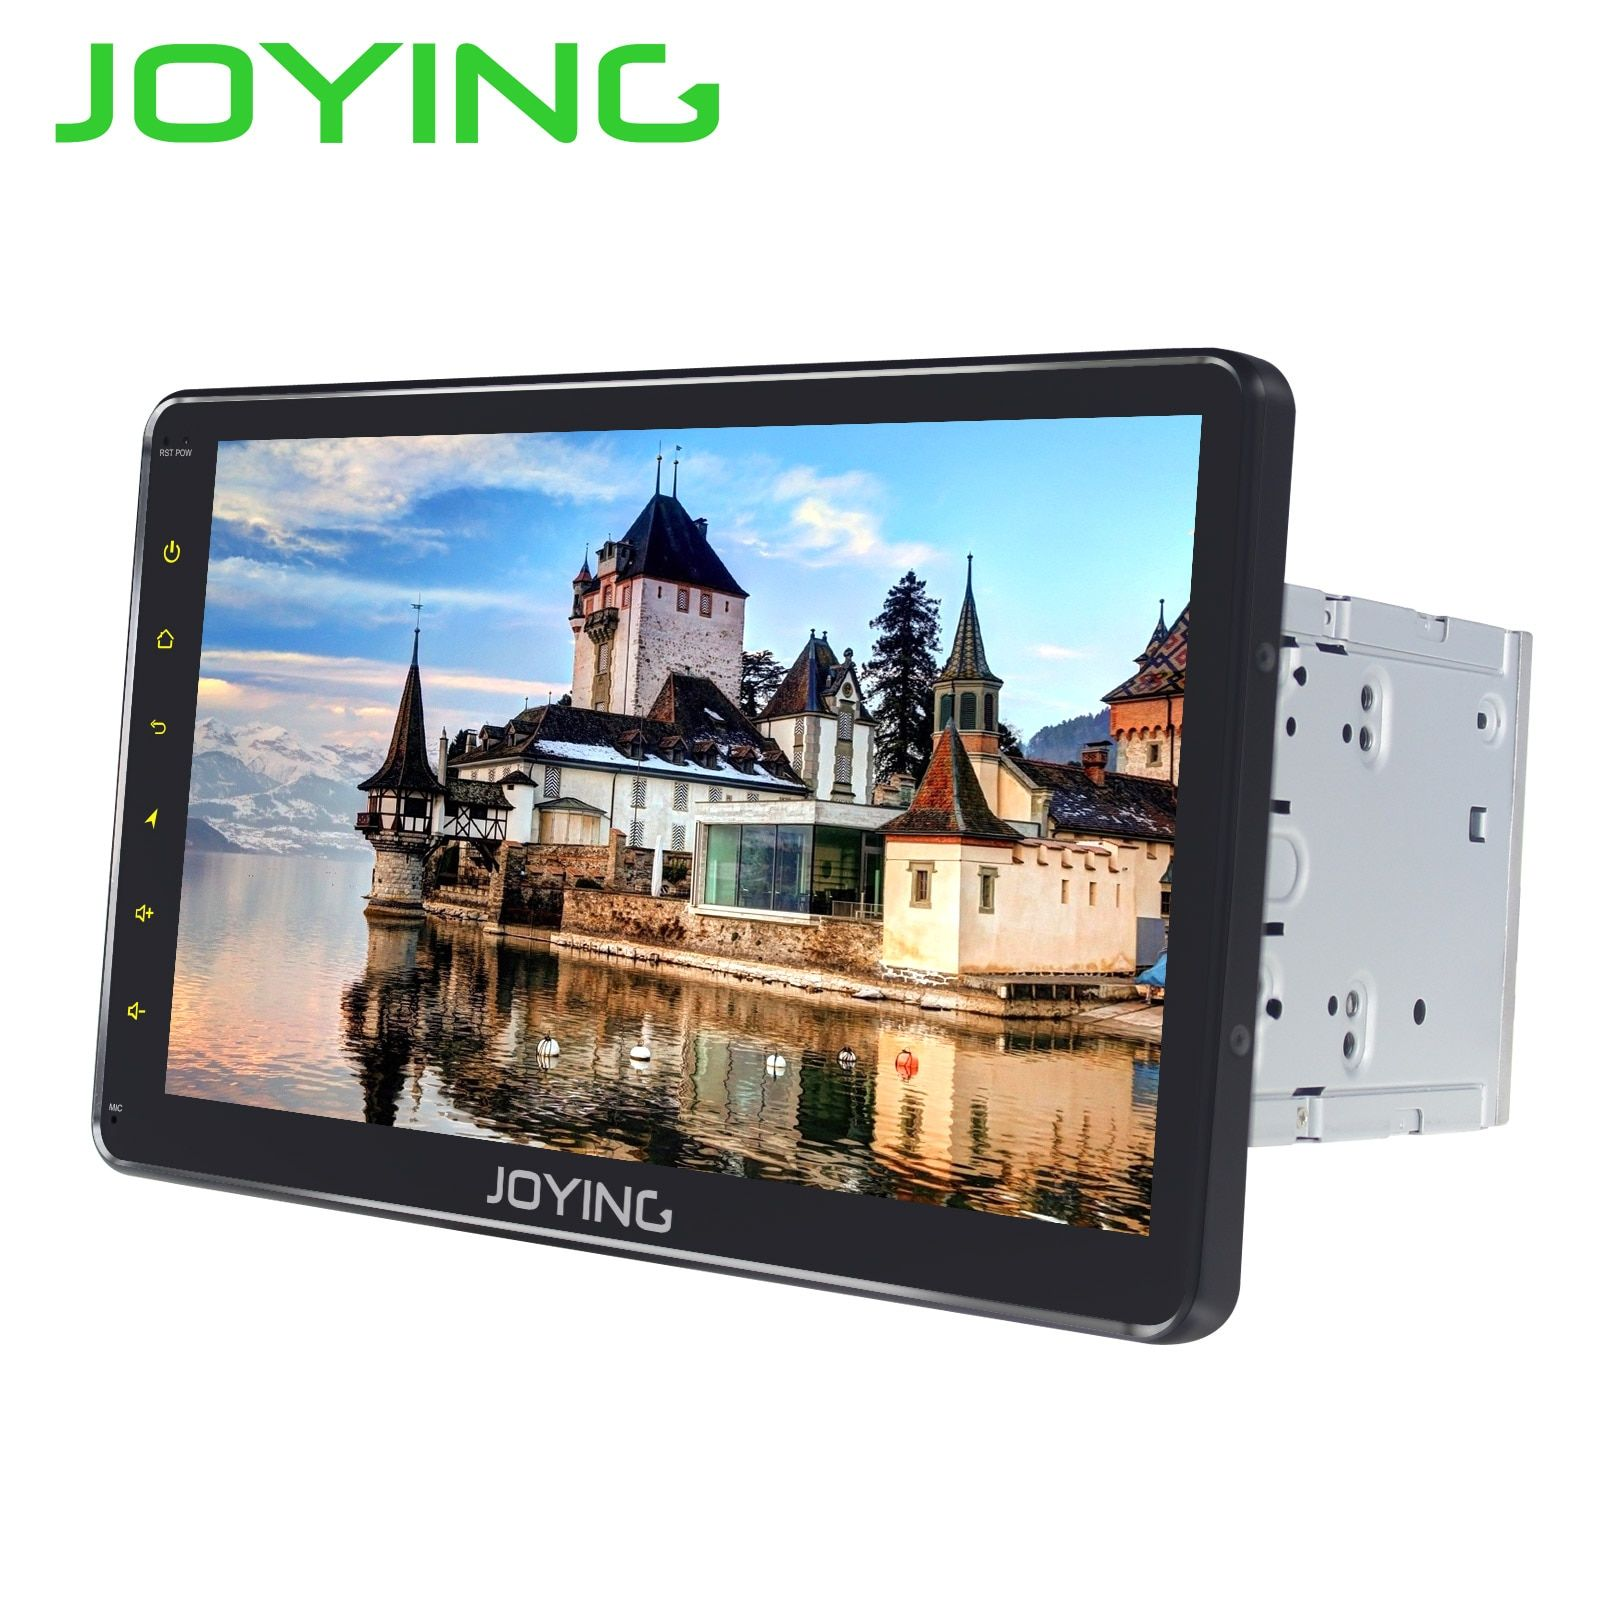 JOYING 10,1 zoll Android 8.1 2 din Auto Radio 4 GB + 32 GB Octa Core GPS IPS HD Gebaut in DSP unterstützung Schnelle Boot Android auto stereo BT